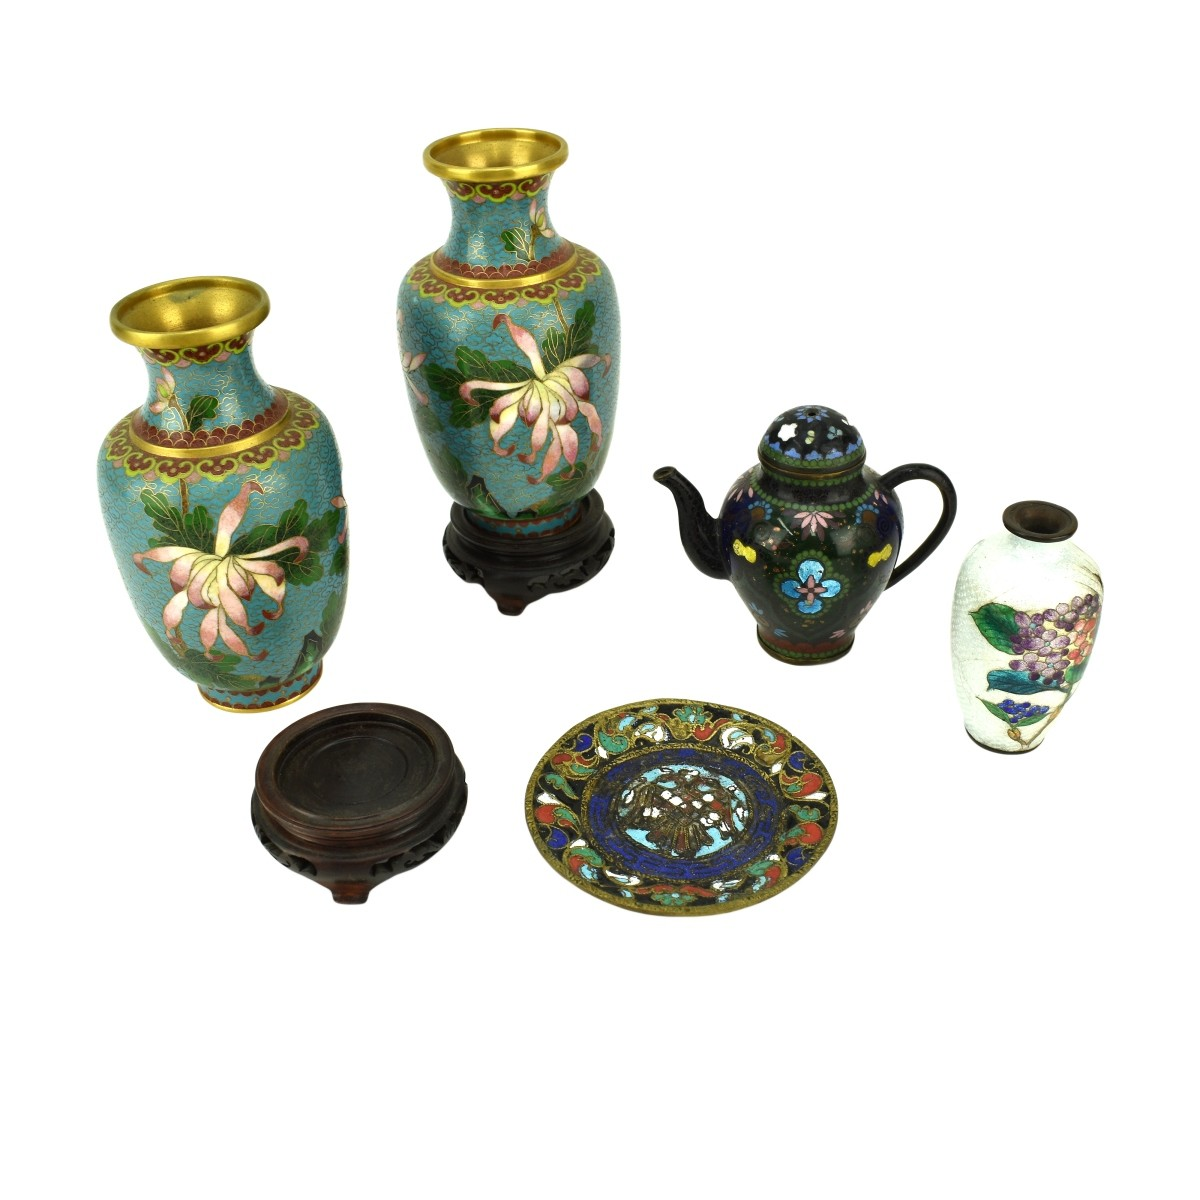 Grouping of Five (5) Chinese Cloisonne